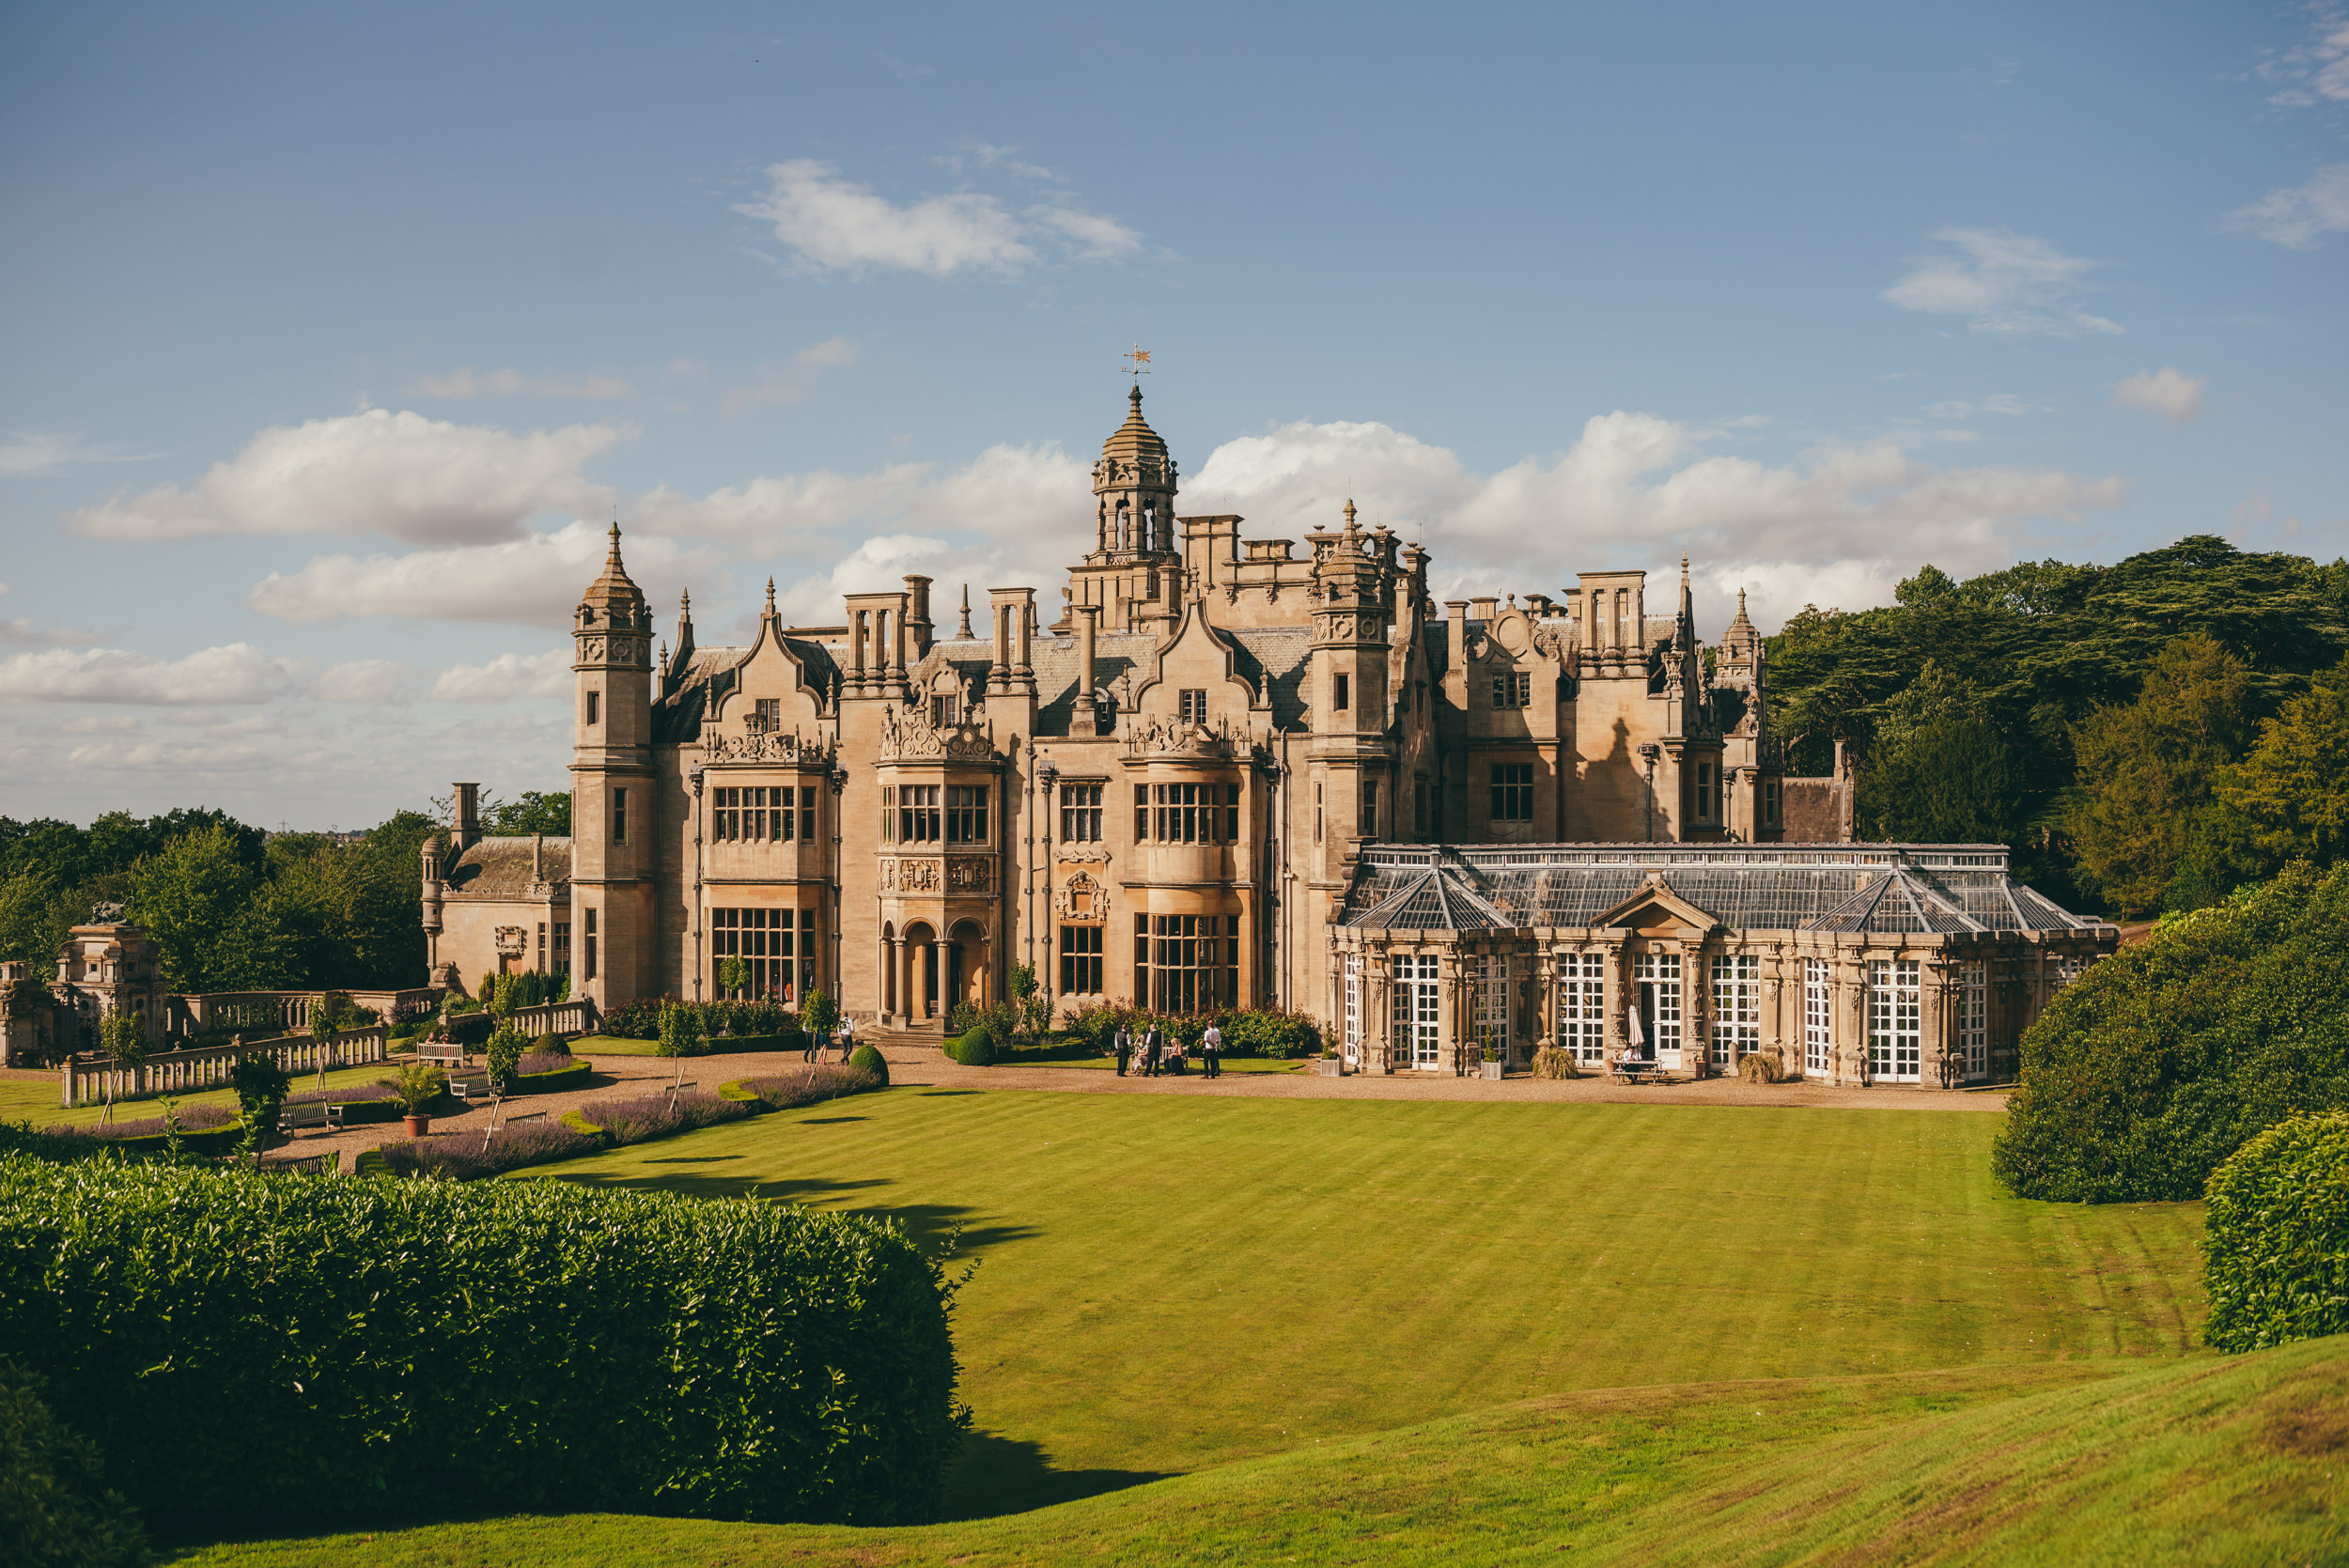 Rear view from high up at Harlaxton Manor on a wedding day